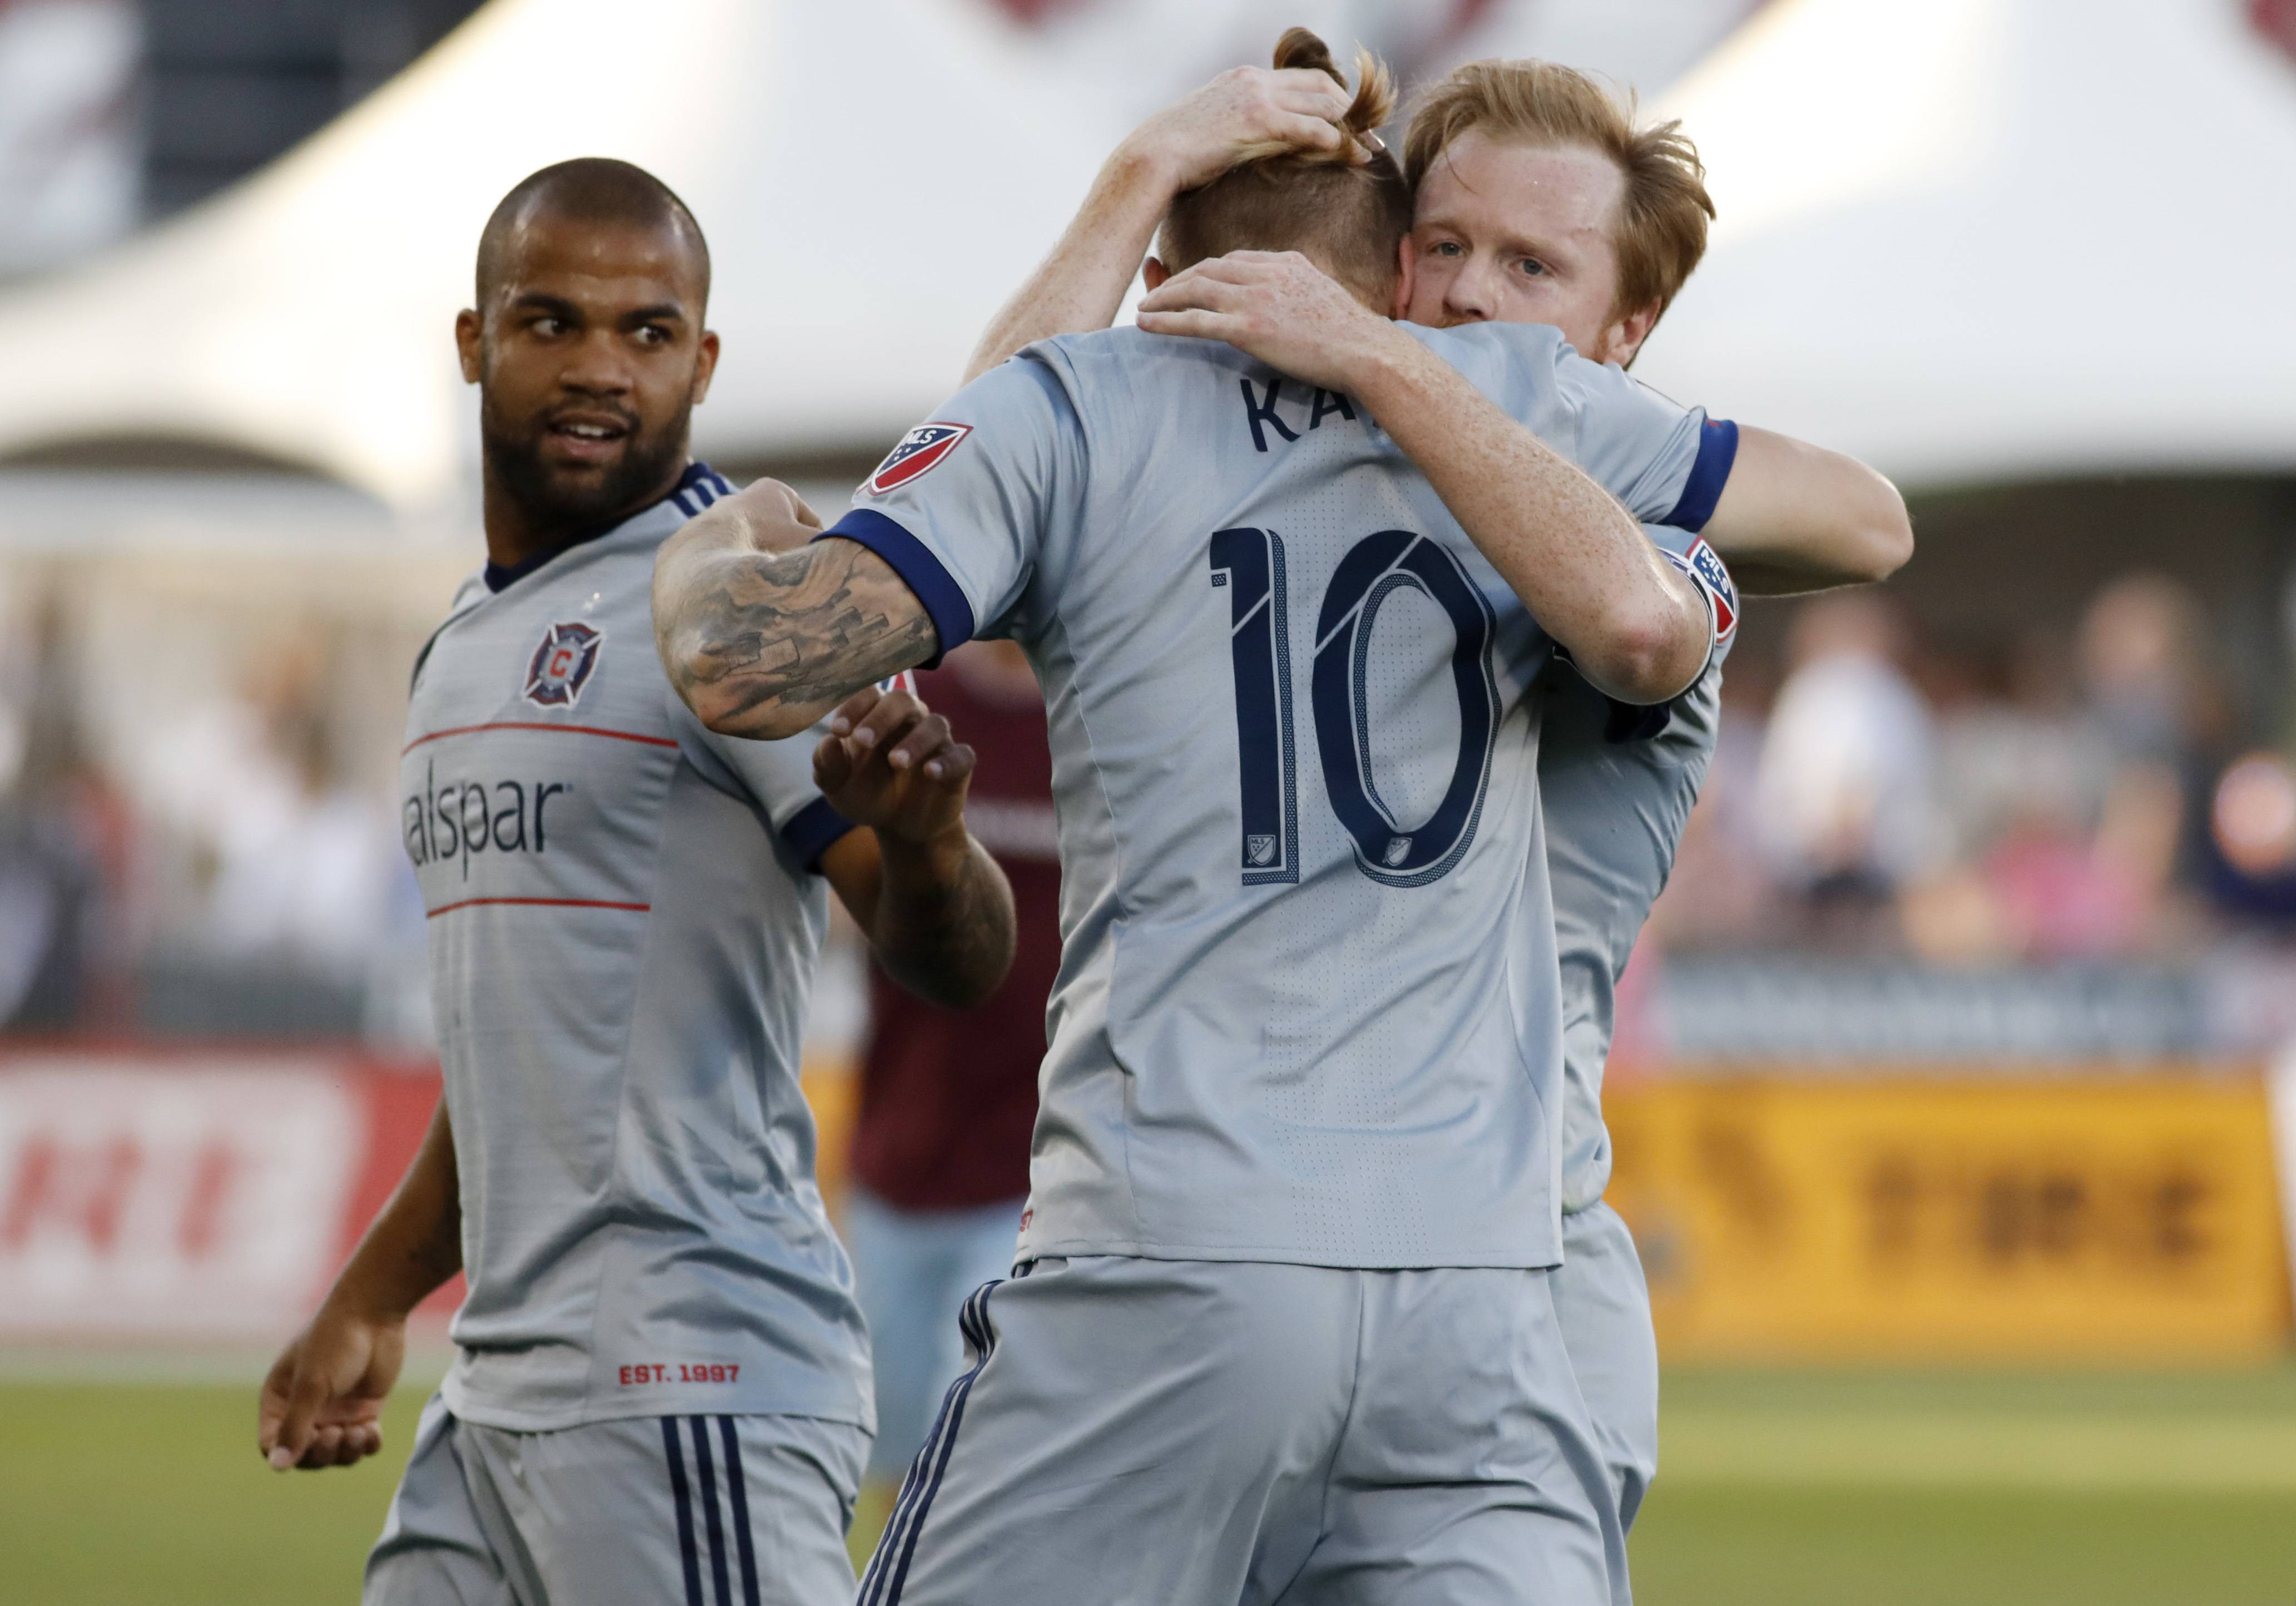 Chicago Fire forward Aleksandar Katai, center, is hugged by midfielder Dax McCarty, right, as defender Kevin Ellis looks over at them after Katai's goal against Colorado Rapids goalkeeper Tim Howard during the first half of an MLS soccer match Wednesday, June 13, 2018, in Commerce City, Colo.